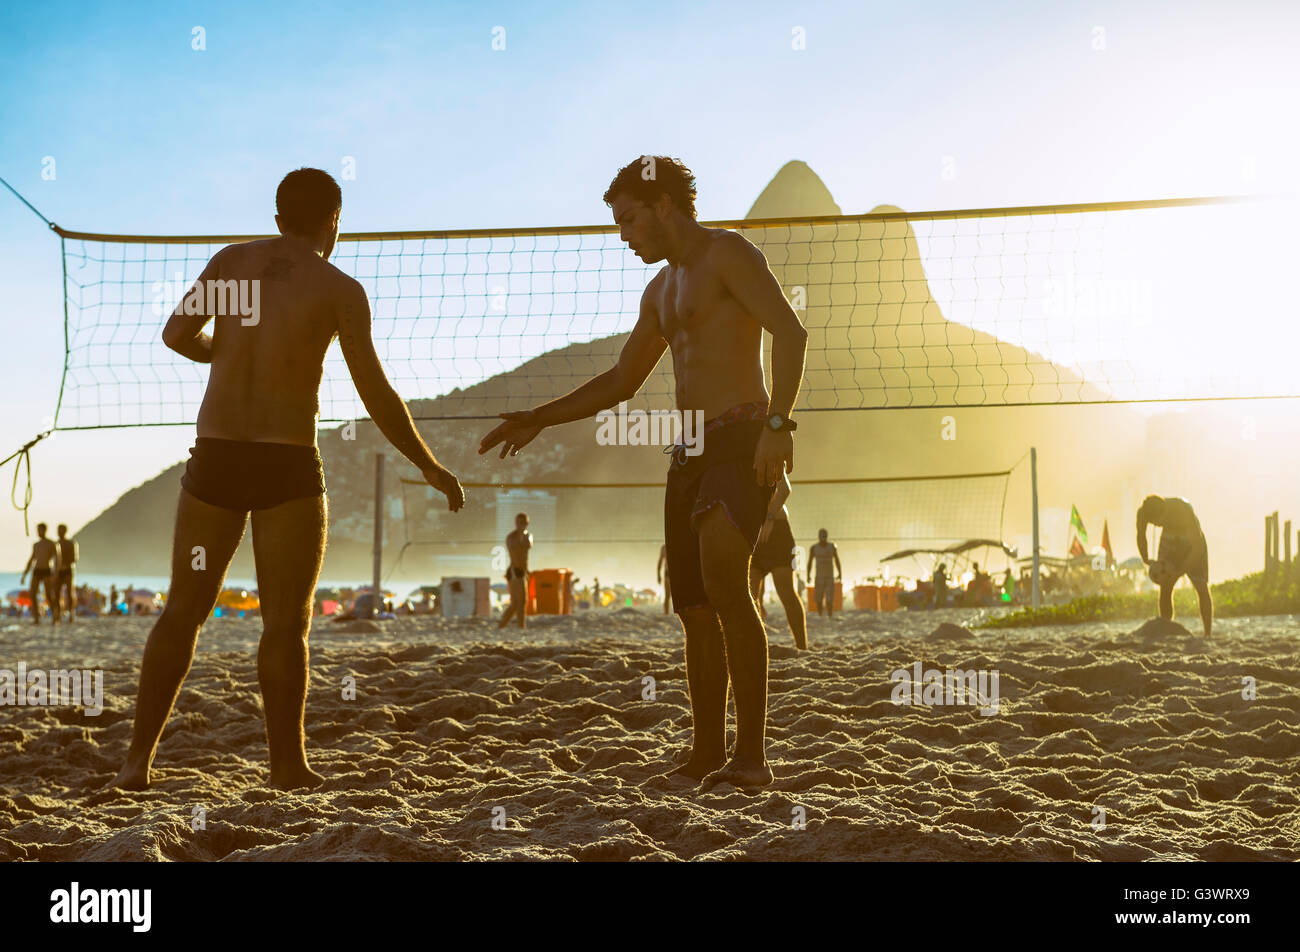 RIO DE JANEIRO - MARCH 20, 2016: Young Brazilians shake hands at beach volleyball, which Brazil is favored to win - Stock Image